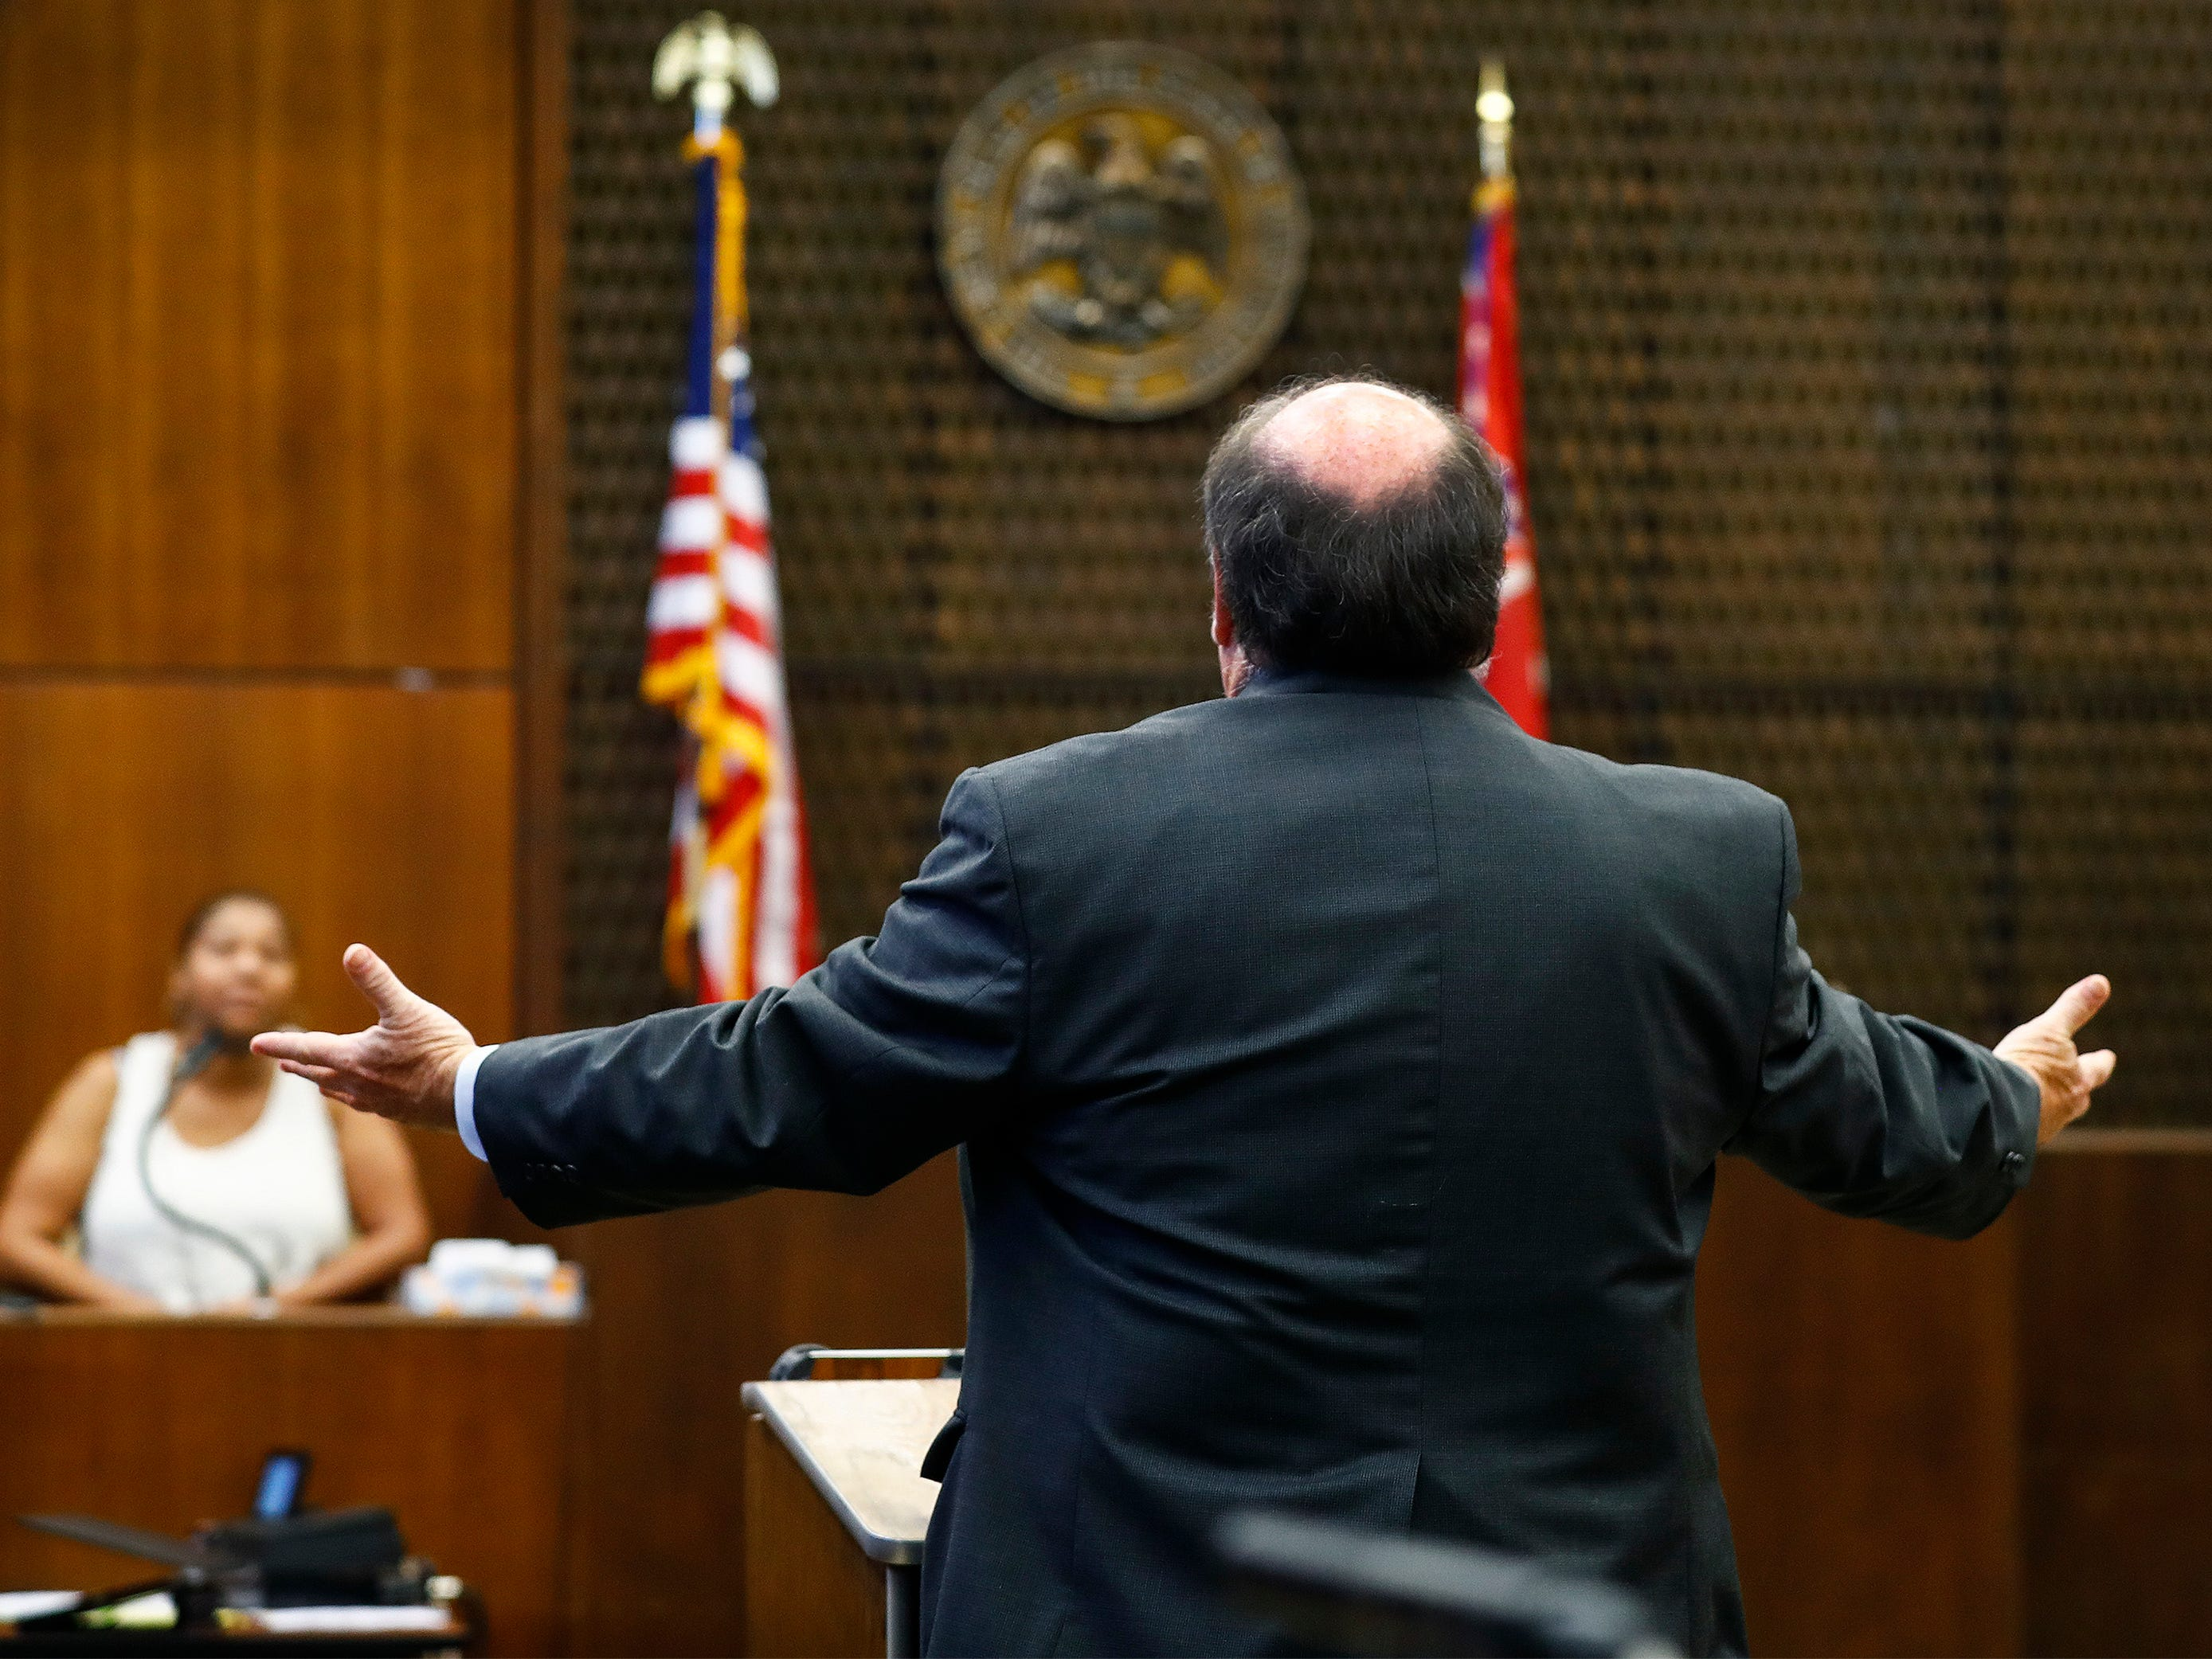 Lead prosecutor John Champion speaks during the retrial of Quinton Tellis in Batesville, Miss., on Sunday, Sept. 30, 2018. Tellis is charged with burning 19-year-old Jessica Chambers to death almost four years ago on Dec. 6, 2014. Tellis has pleaded not guilty to the murder.